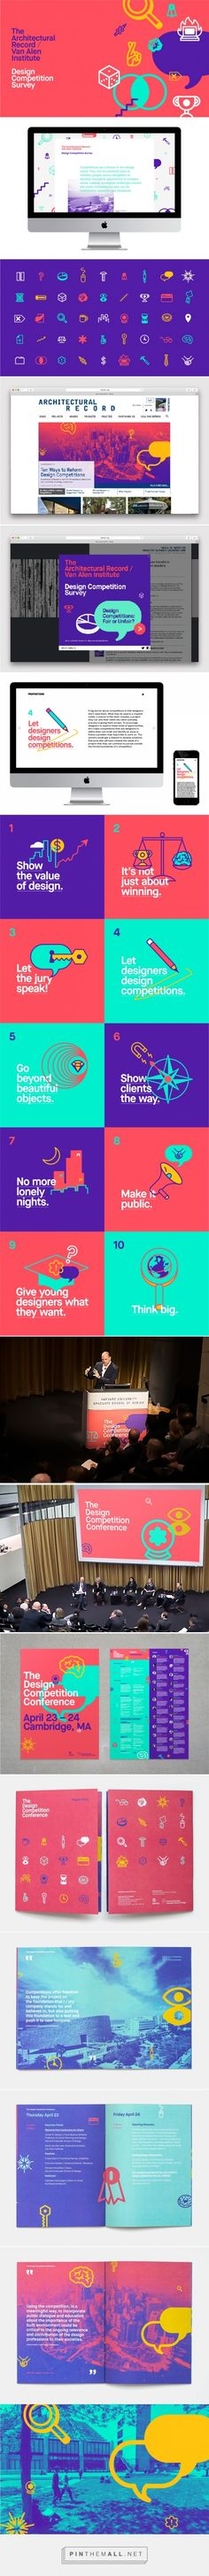 Bruce Mau Design | The Design Competition Survey & Conference | Work http://www.brucemaudesign.com/work?project_id=118 - created via http://pinthemall.net